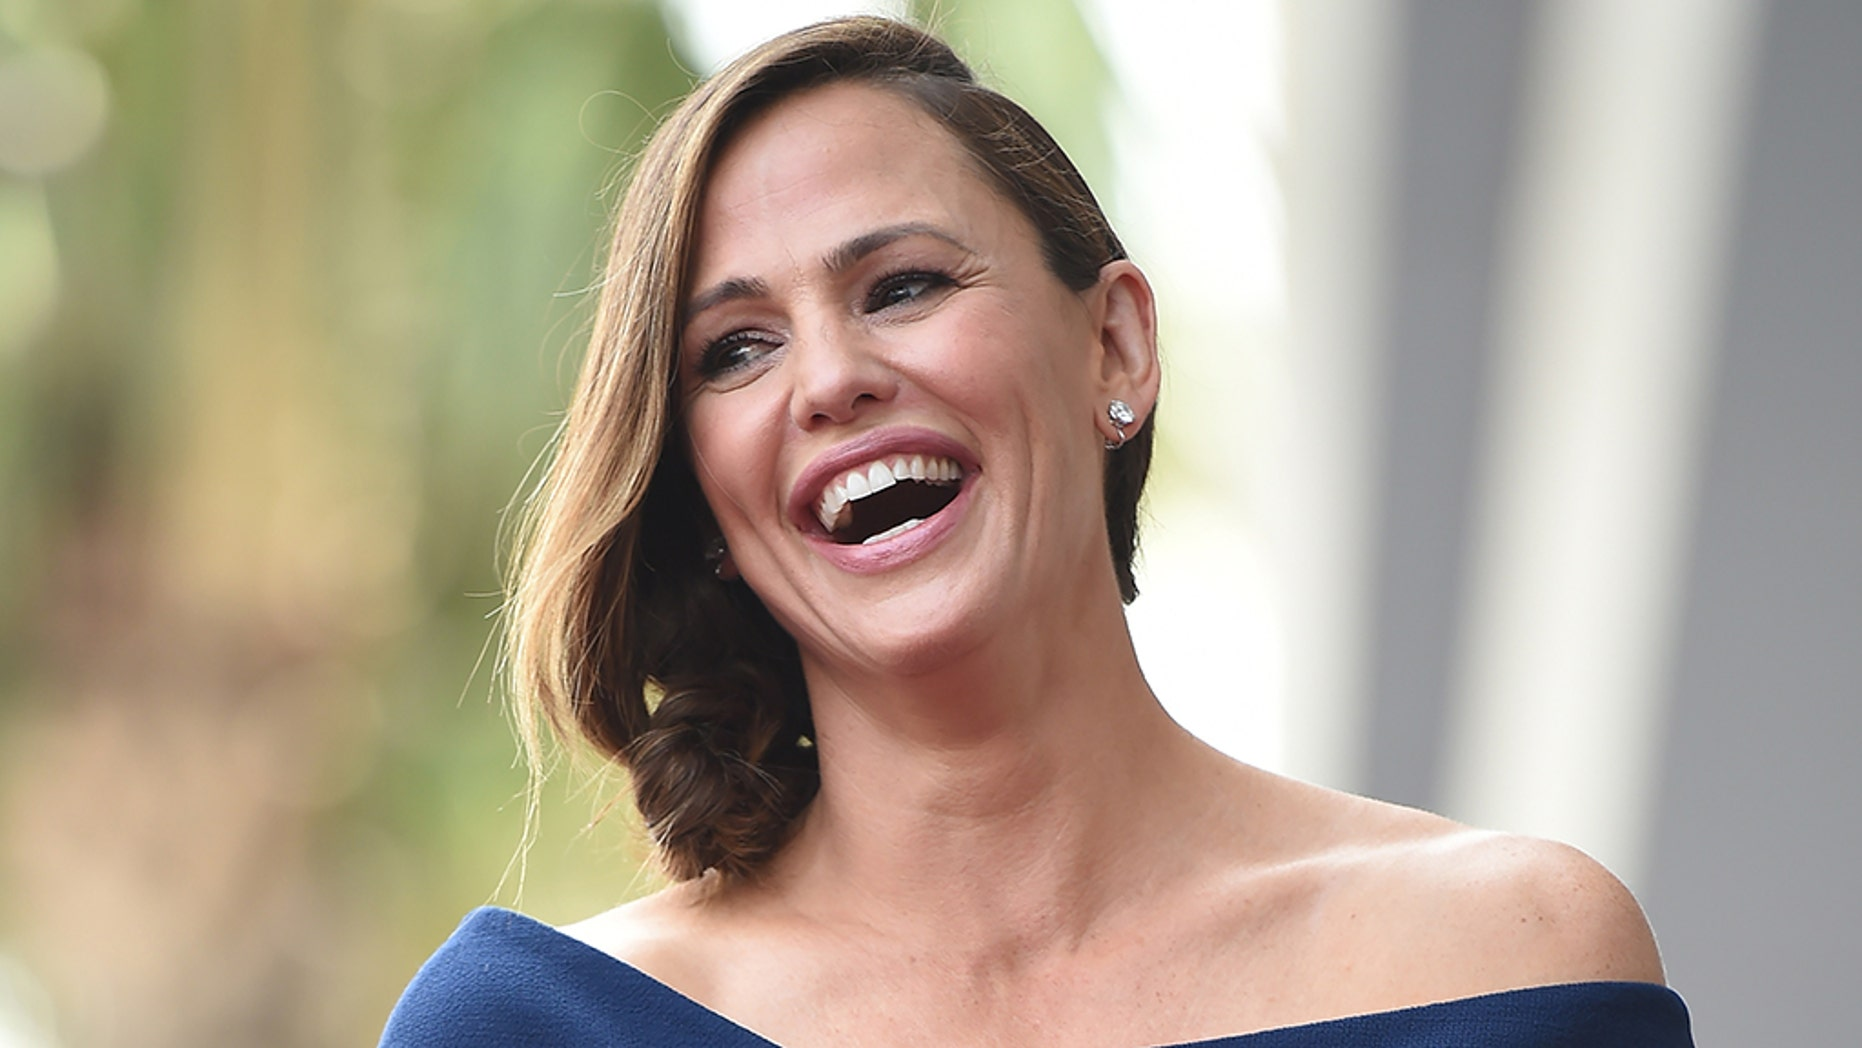 Actress Jennifer Garner brought Instagram to a photo of herself dressed in a brass band uniform and playing saxophone.